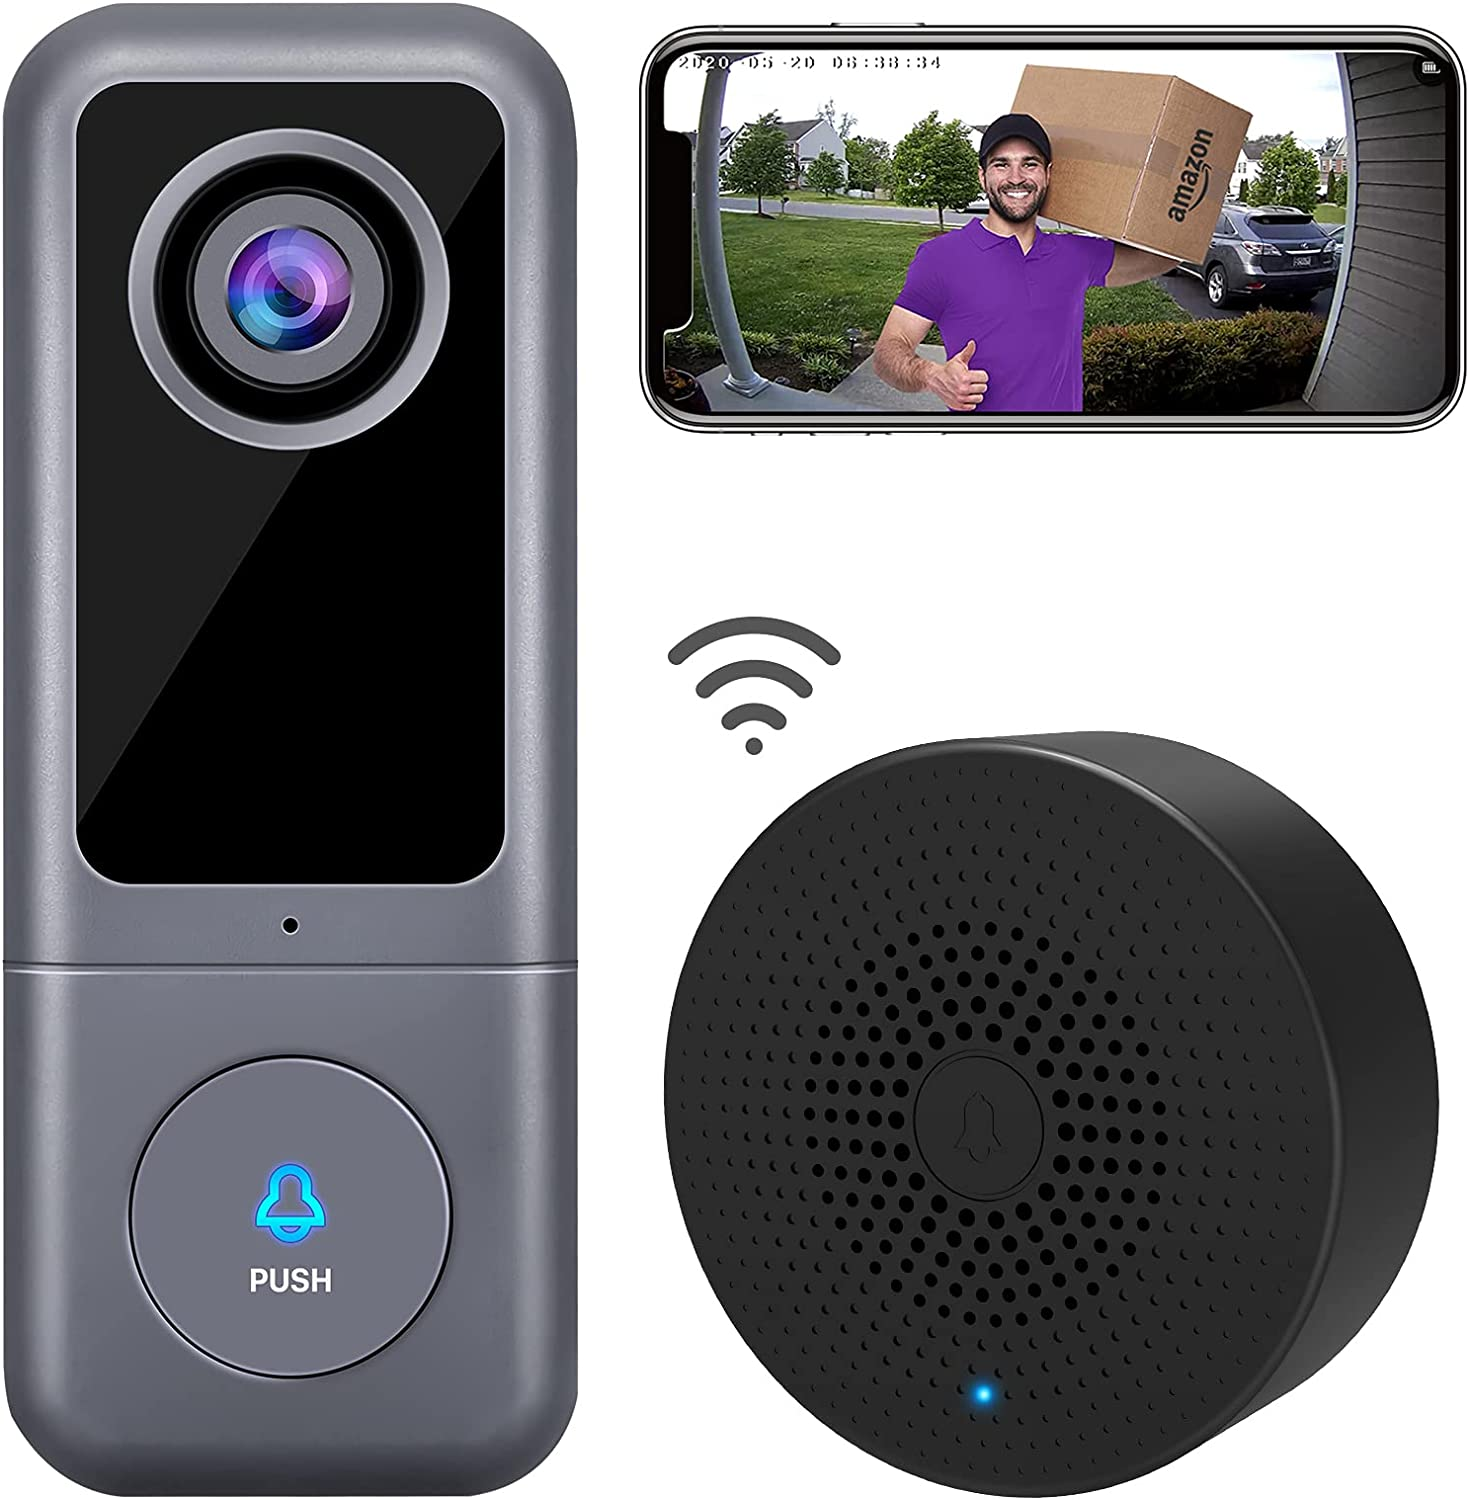 ?2021 Upgraded? WiFi Video Doorbell Camera, XTU Wired Doorbell Camera with Chime, 2K Ultra HD, 2-Way Audio, Night Vision, Easy Installation, Motion Detection, IP65 Waterproof